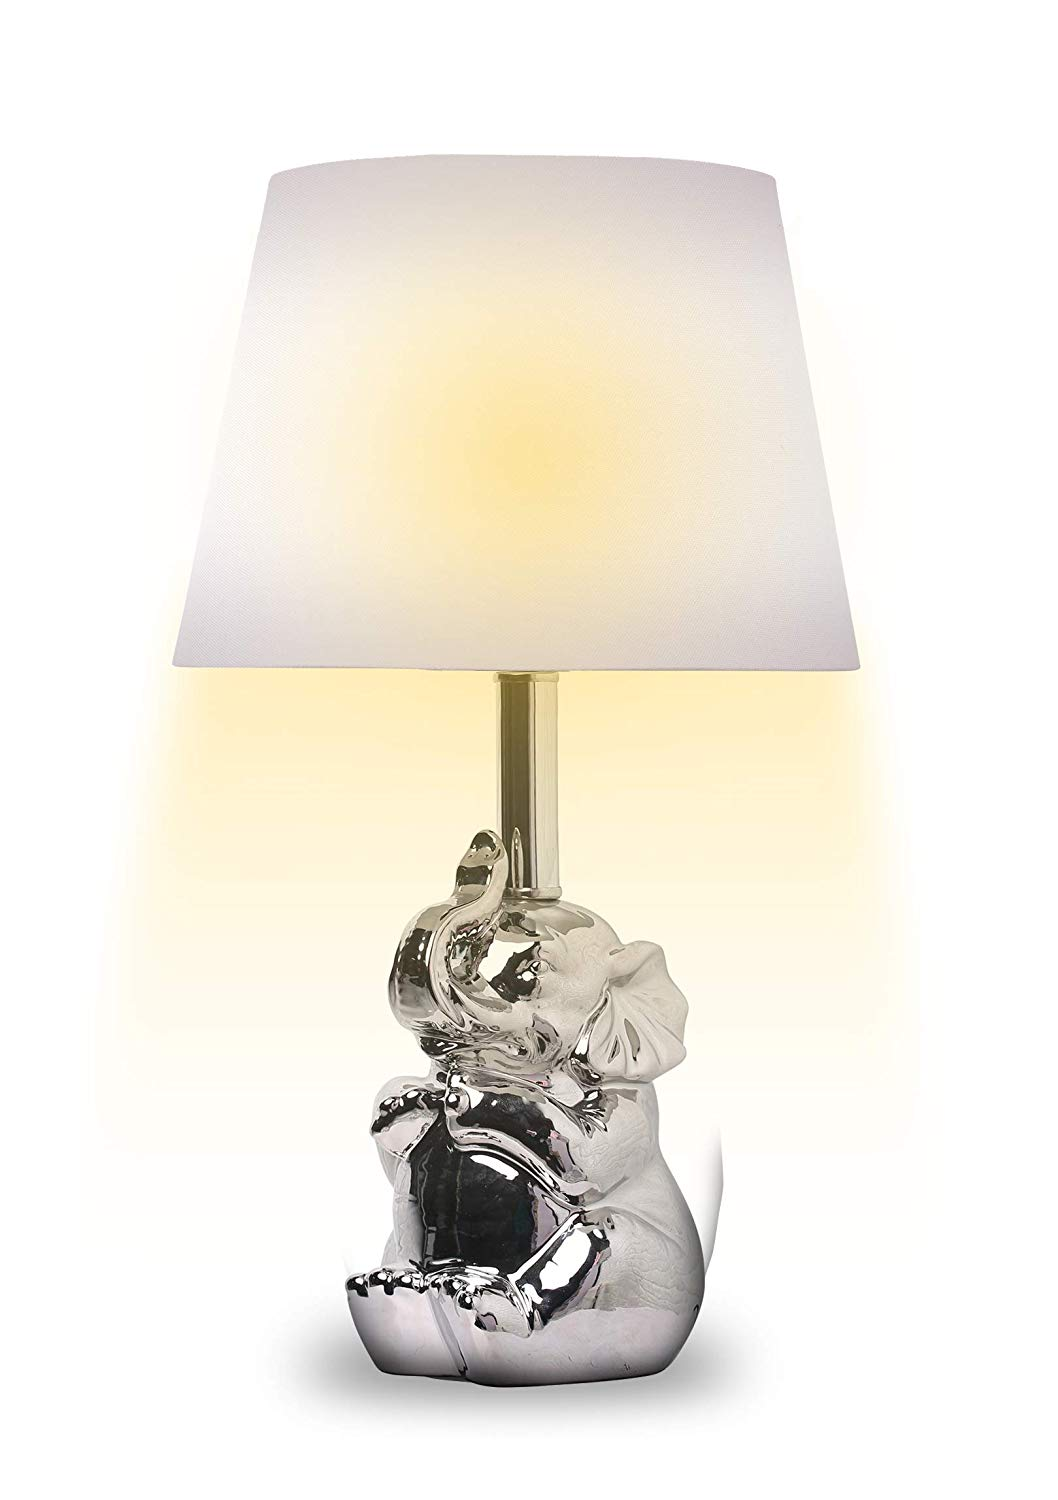 Get Quotations 19 Ceramic Elephant Gold Silver Finish Table Lamps With Shade